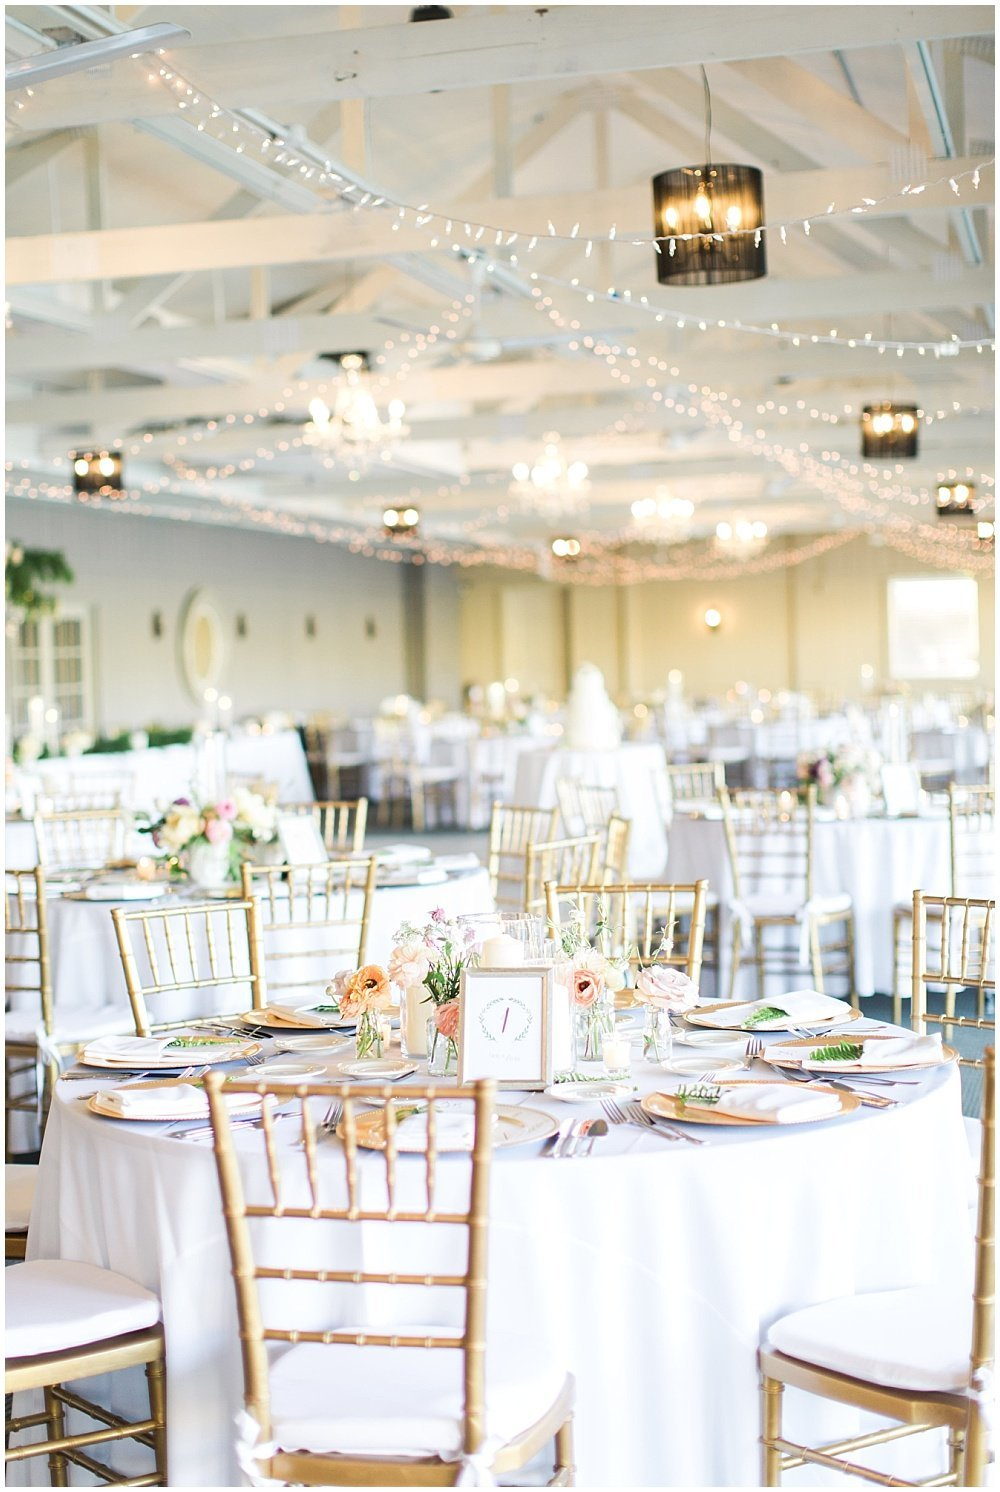 Spring-Floral-Willows-On-Westfield-Lodge-Wedding-Ivan-Louise-Images-Jessica-Dum-Wedding-Coordination_photo_0021